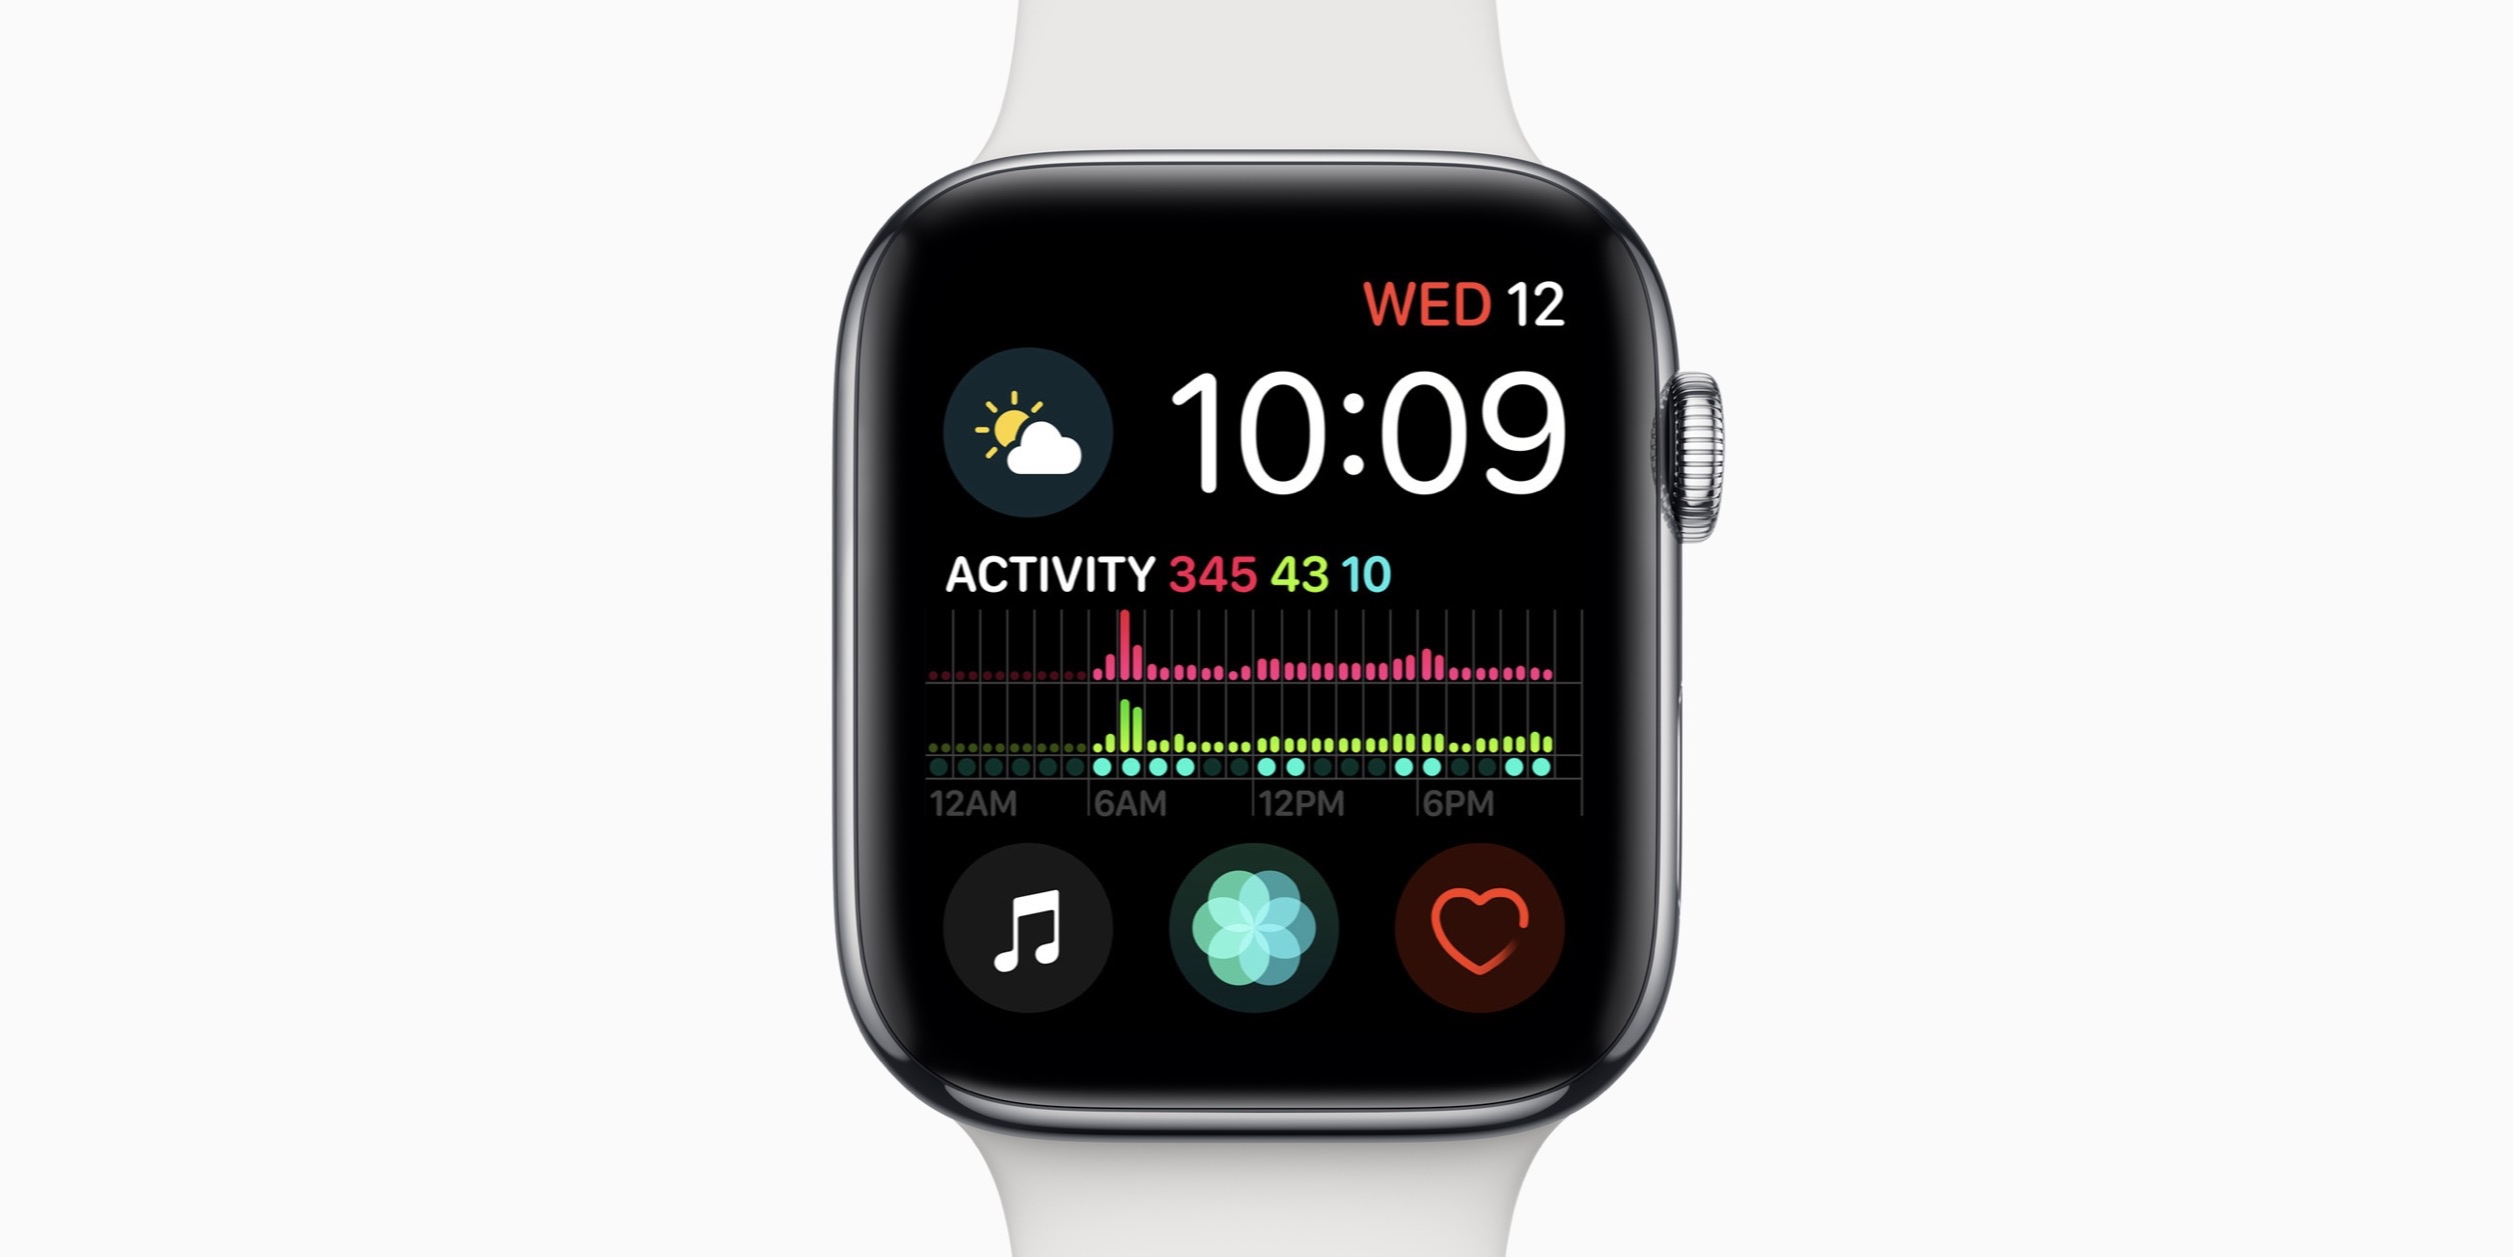 Some Apple Watch Series 4 models repeatedly crashing and rebooting due to daylight saving time bug